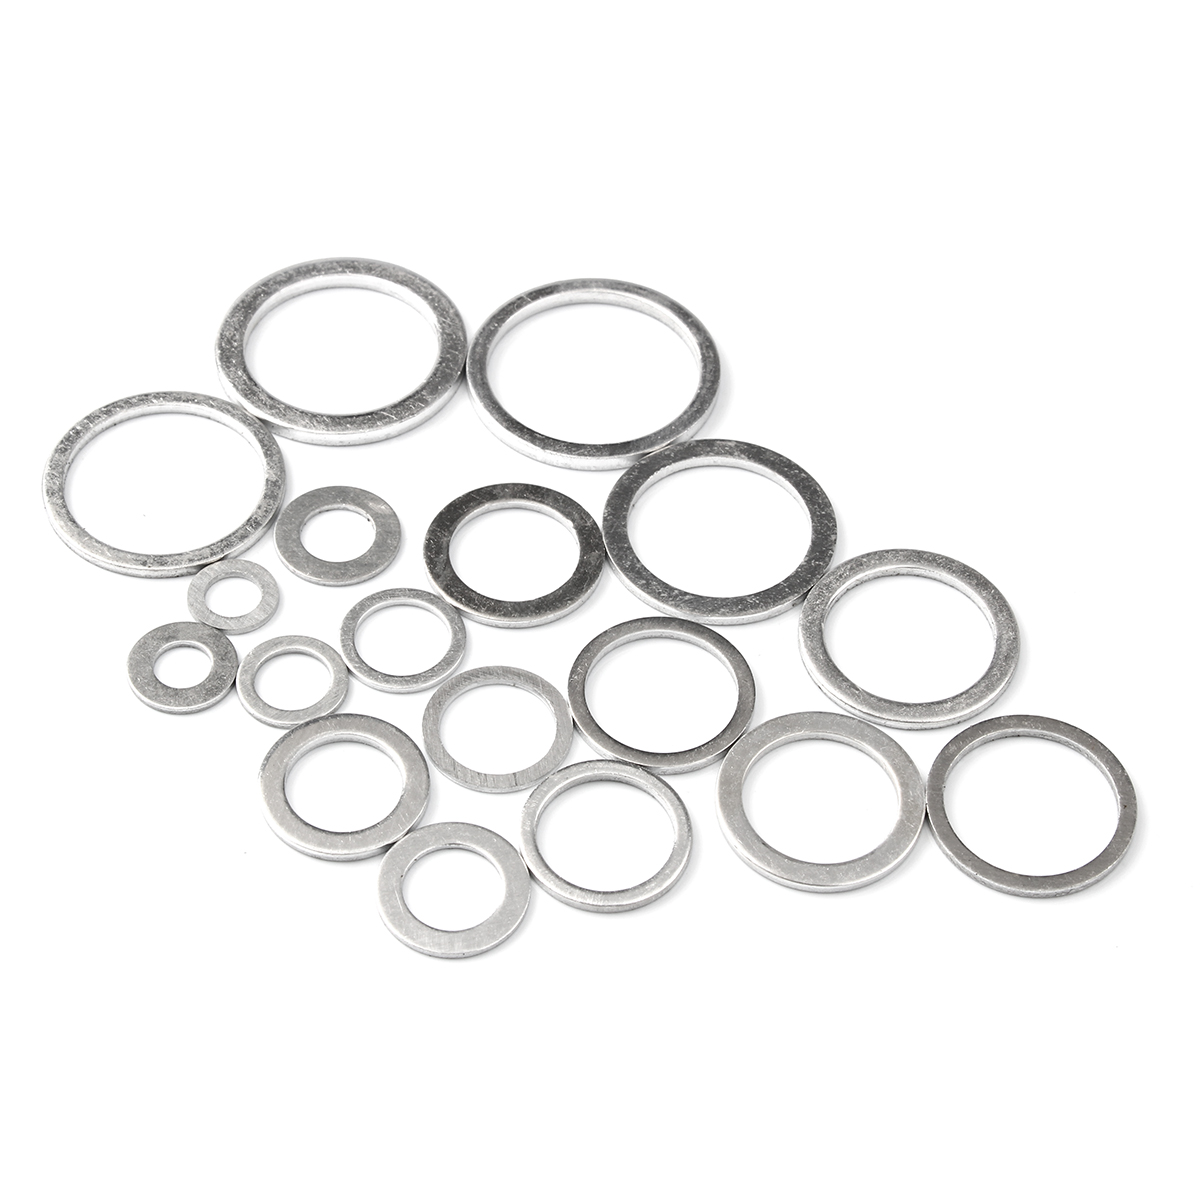 Image 5 - 450Pcs Gaskets Washers Gasket Aluminum Flat Metal Washer Gasket Assorted Aluminum Sealing Rings set With Box-in Washers from Home Improvement